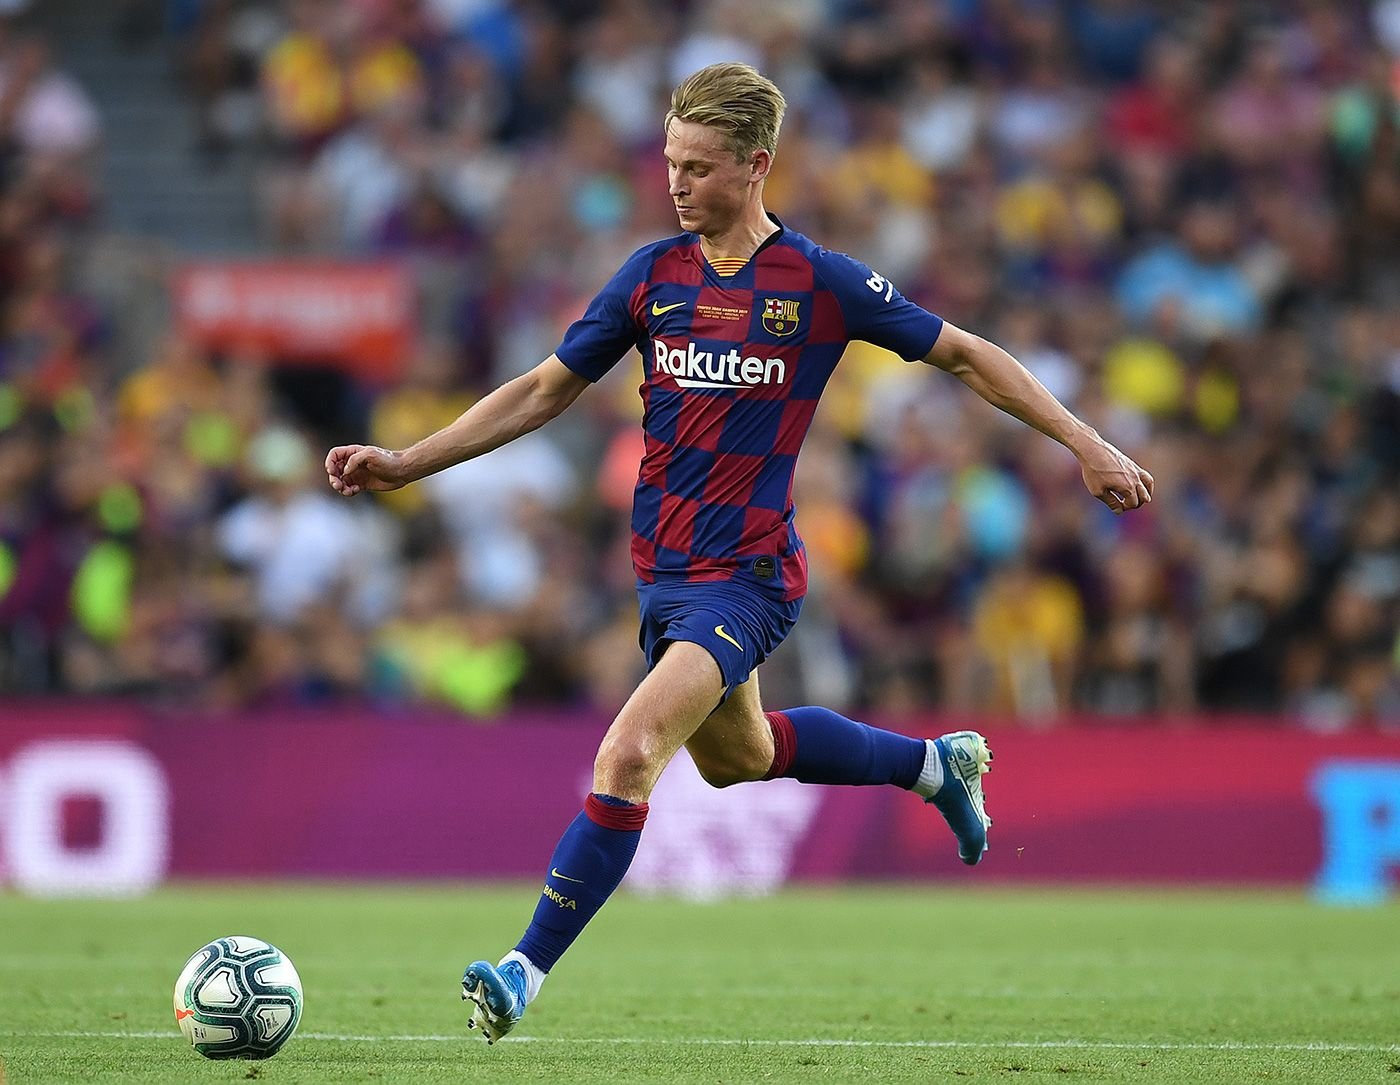 De Jong I M Not Afraid Of Competition I Will Try To Be One Of The Chosen